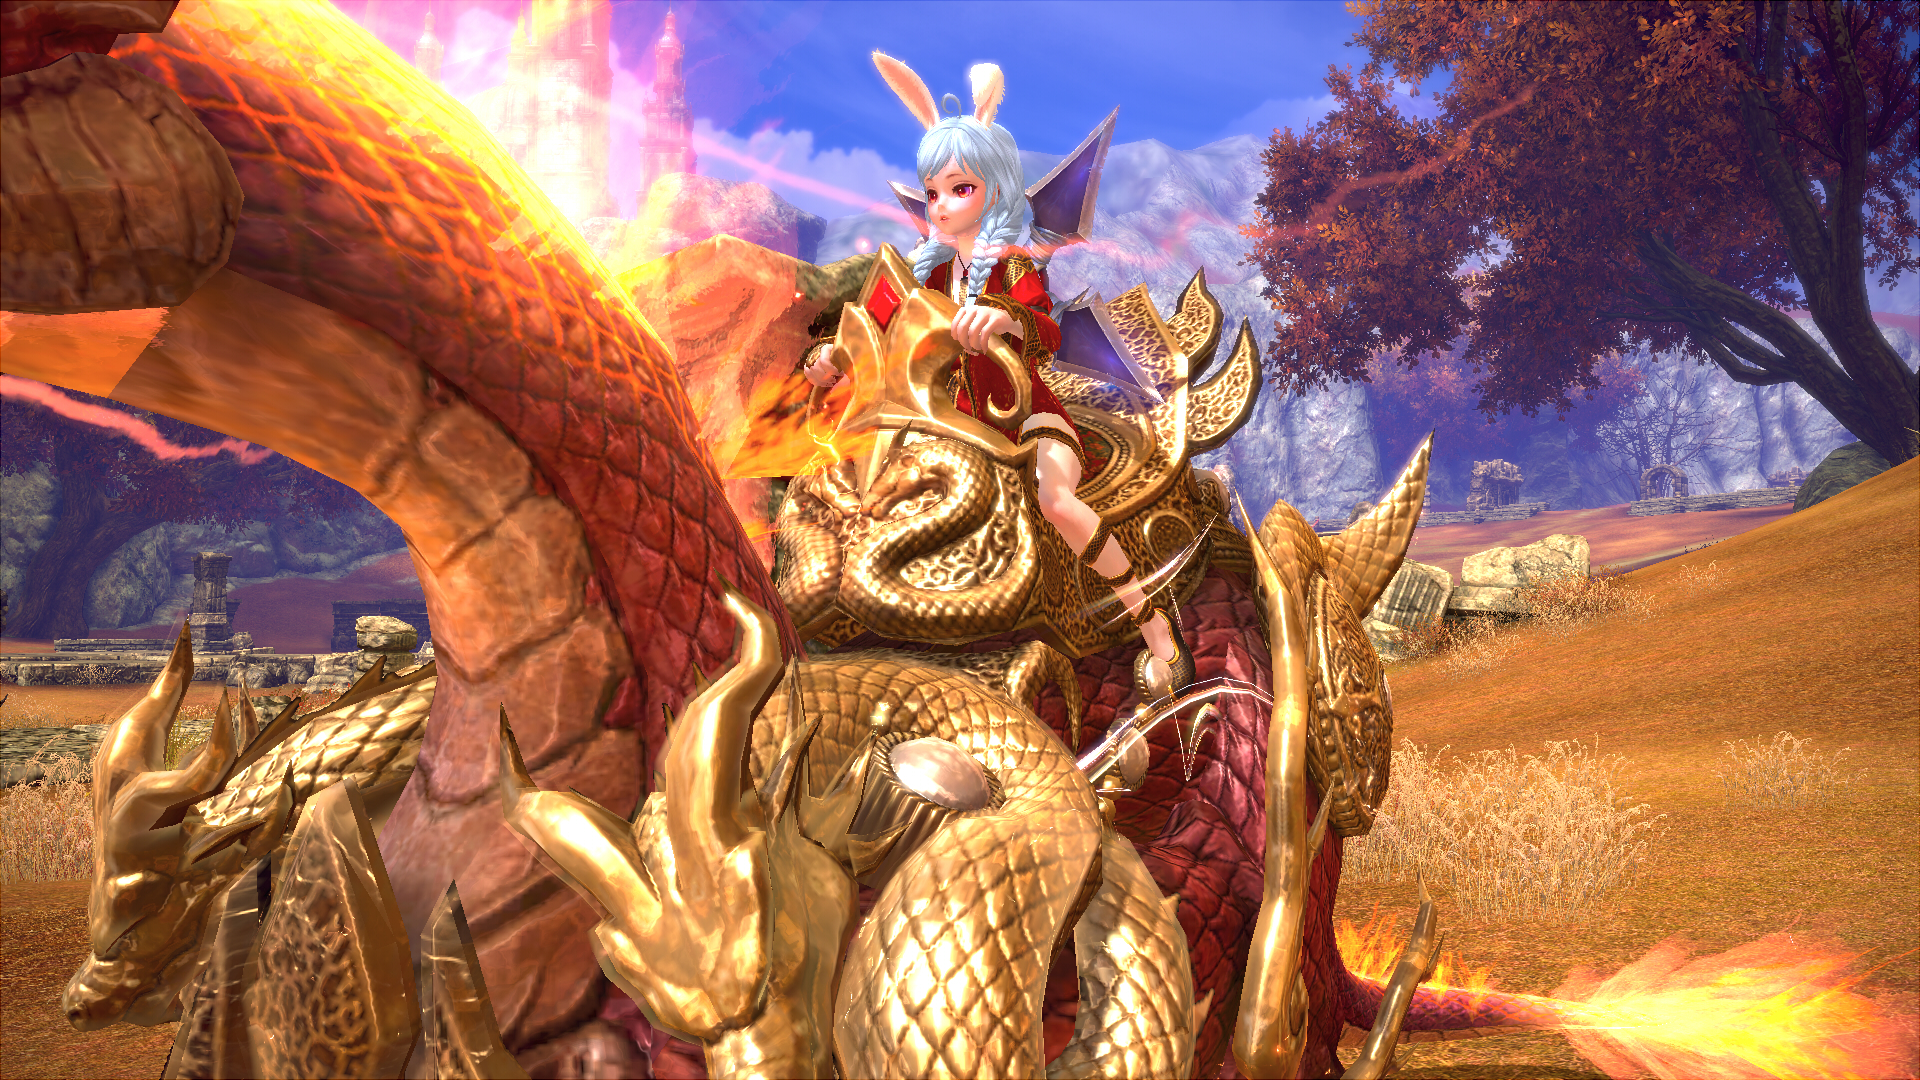 Tera Online Rabbit Impress Wallpaper Hd By Lenmjpu On